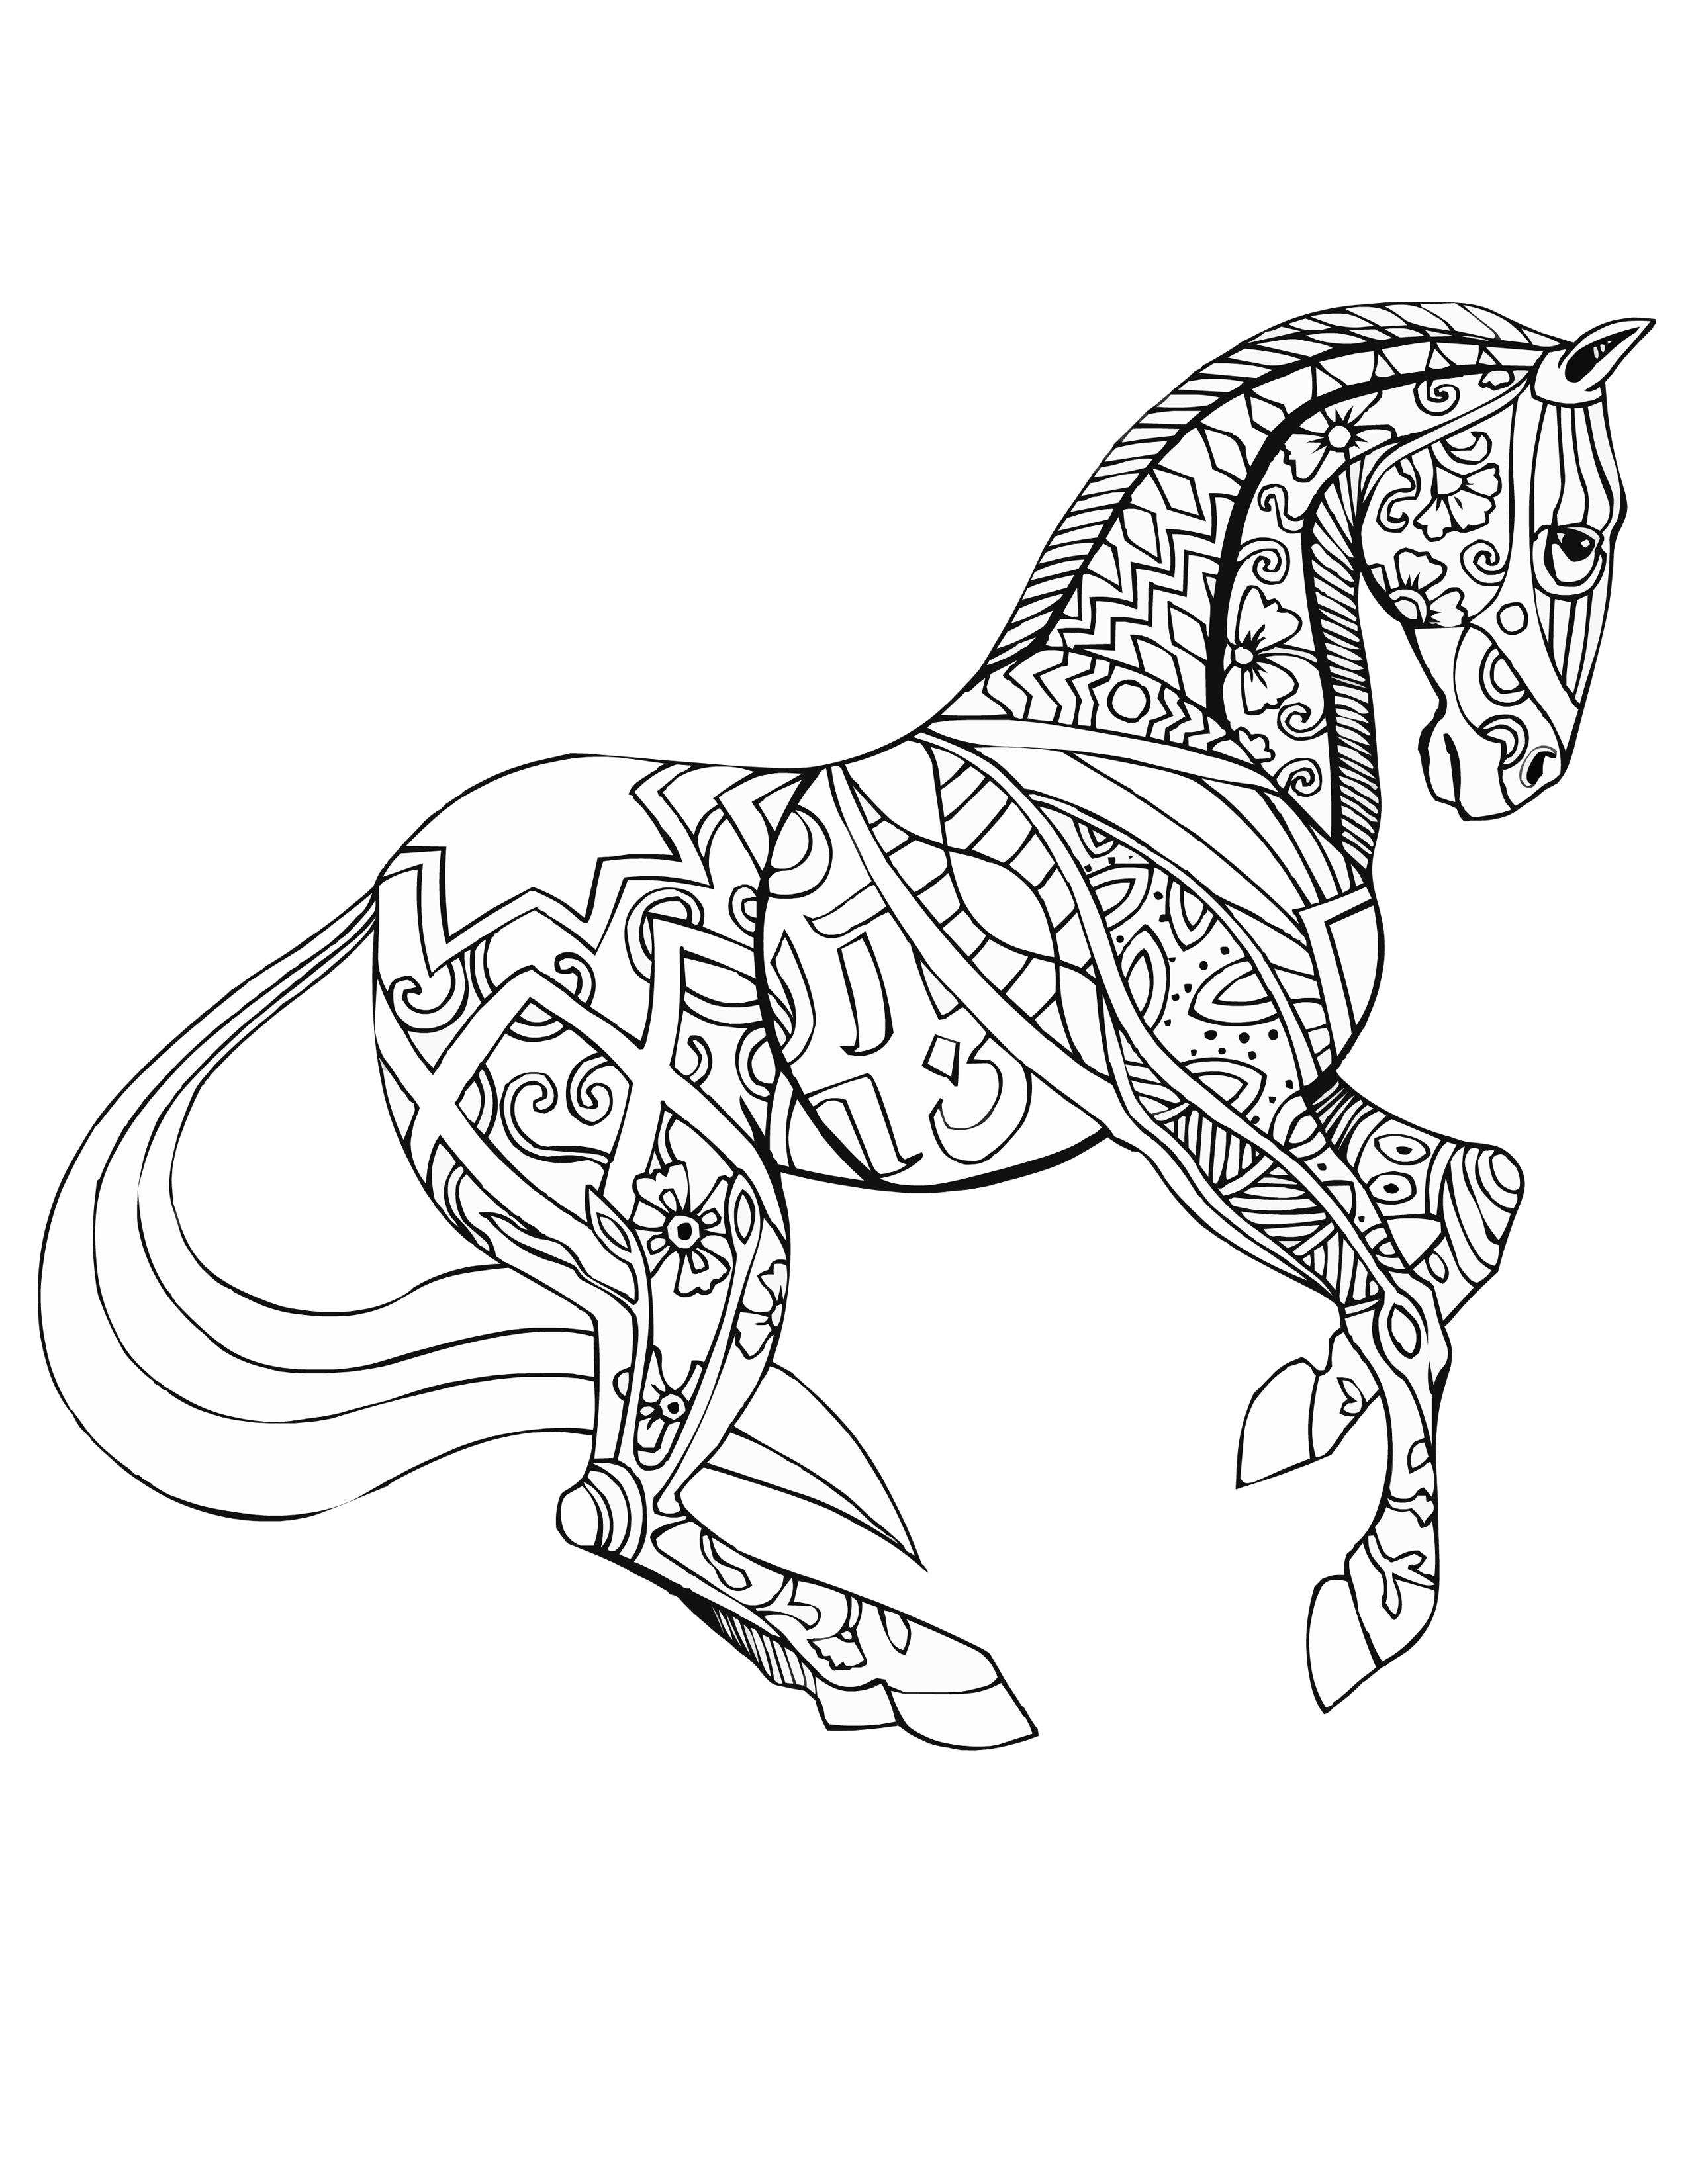 coloring pages of a horse realistic horse coloring pages to download and print for free a of pages horse coloring